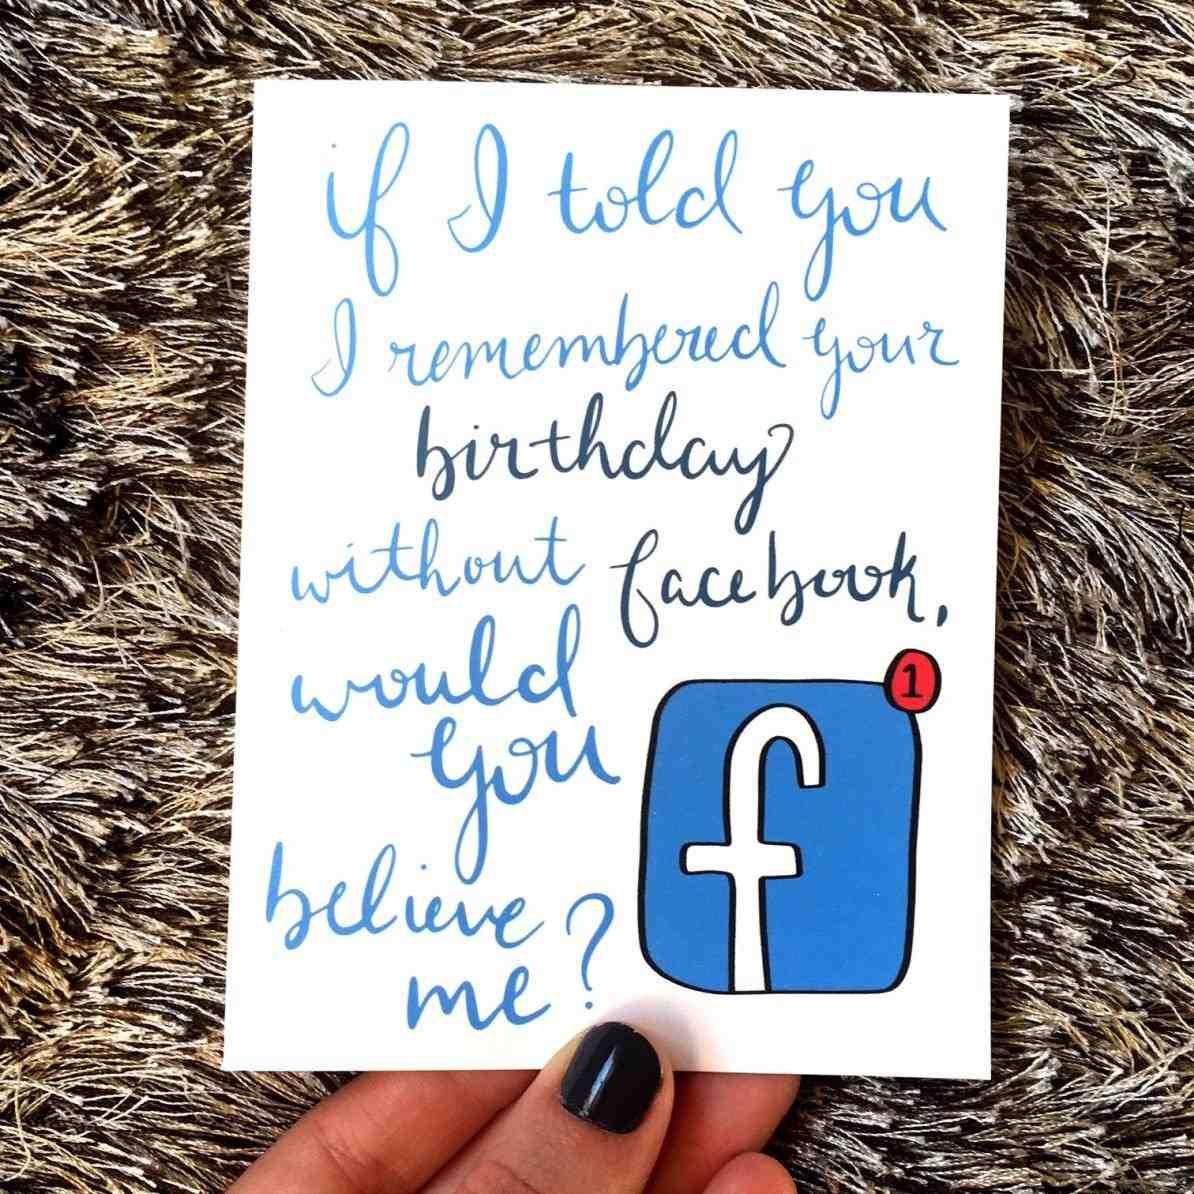 Facebook vs letterpressed birthday card amazing free birthday cards facebook vs letterpressed birthday card amazing free birthday cards for facebook friends portrait stylish free birthday cards for facebook friends black kristyandbryce Image collections